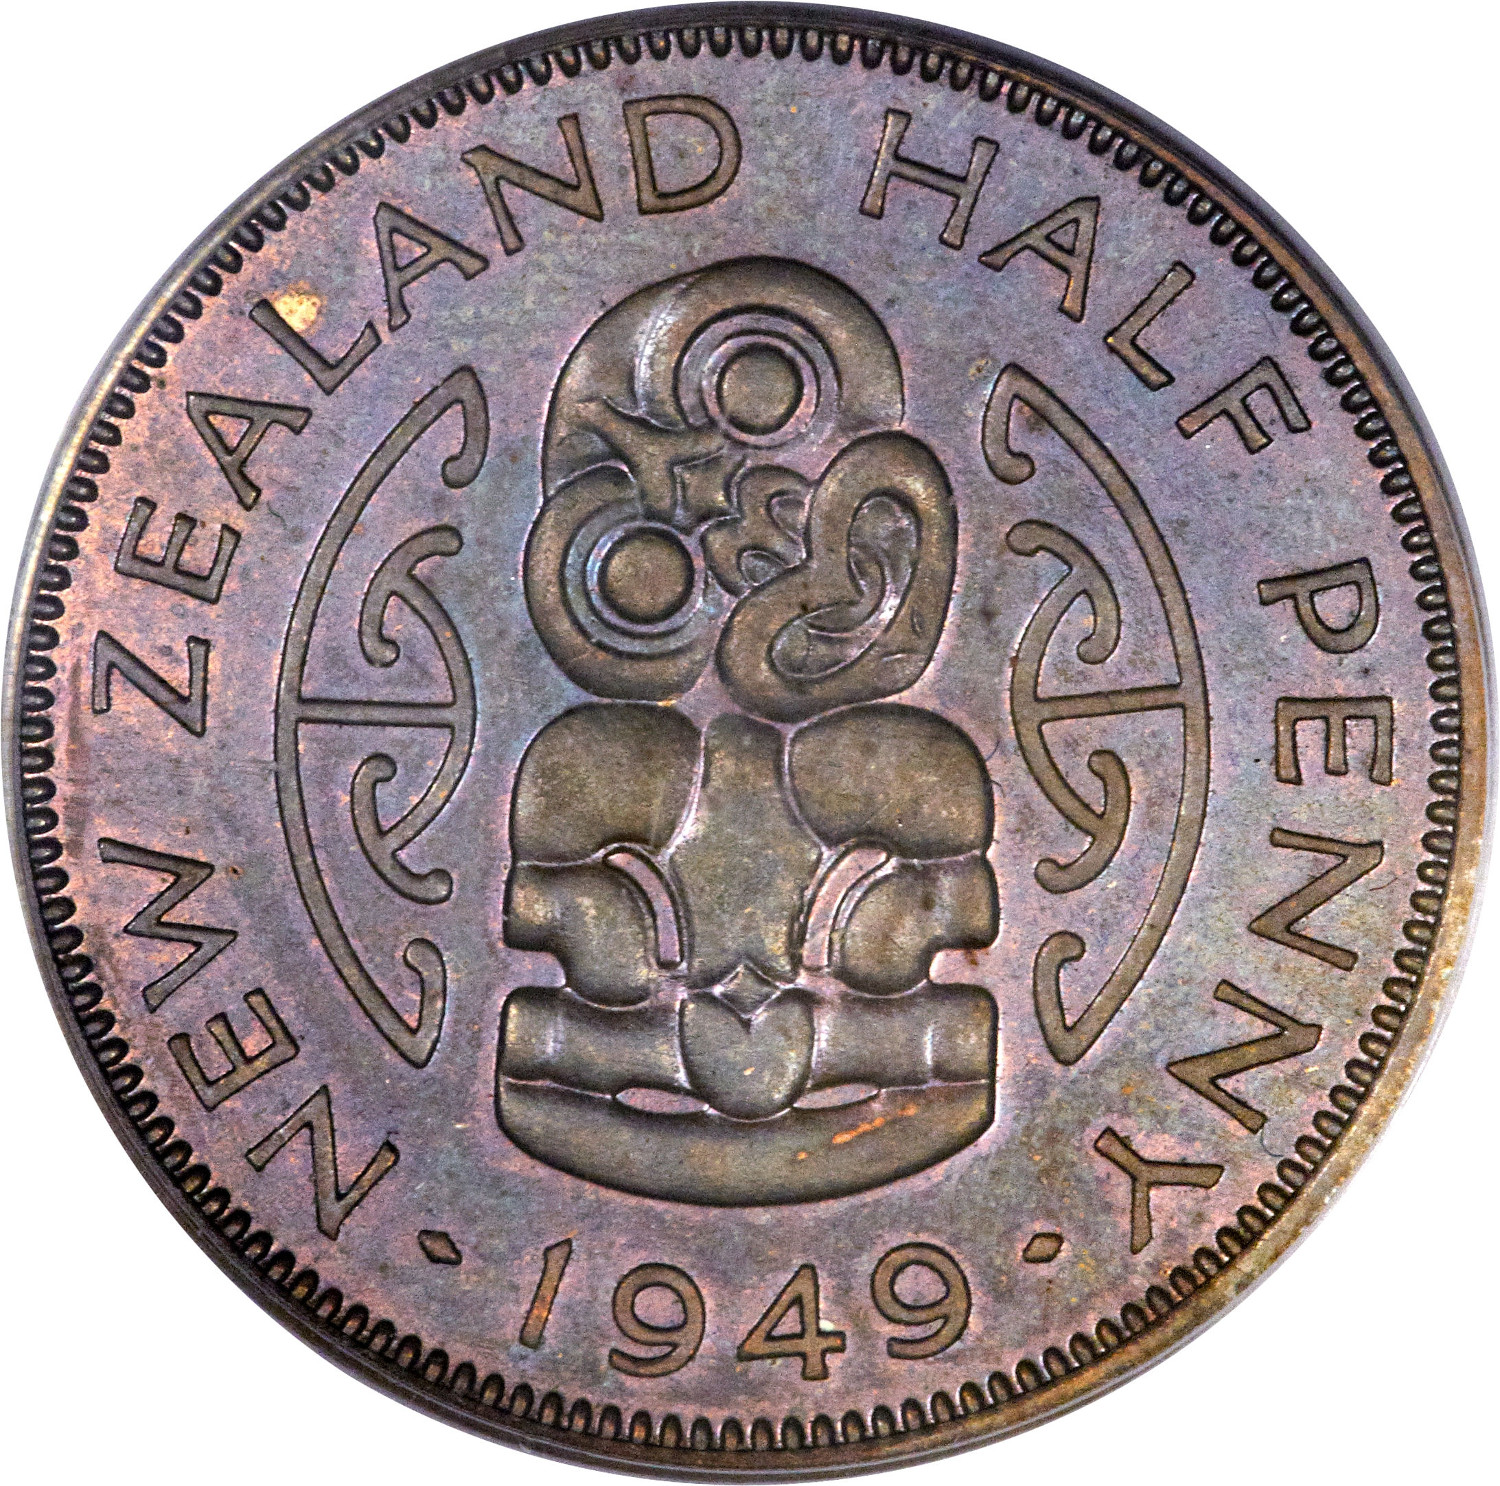 Halfpenny 1949: Photo New Zealand 1949 1/2 penny